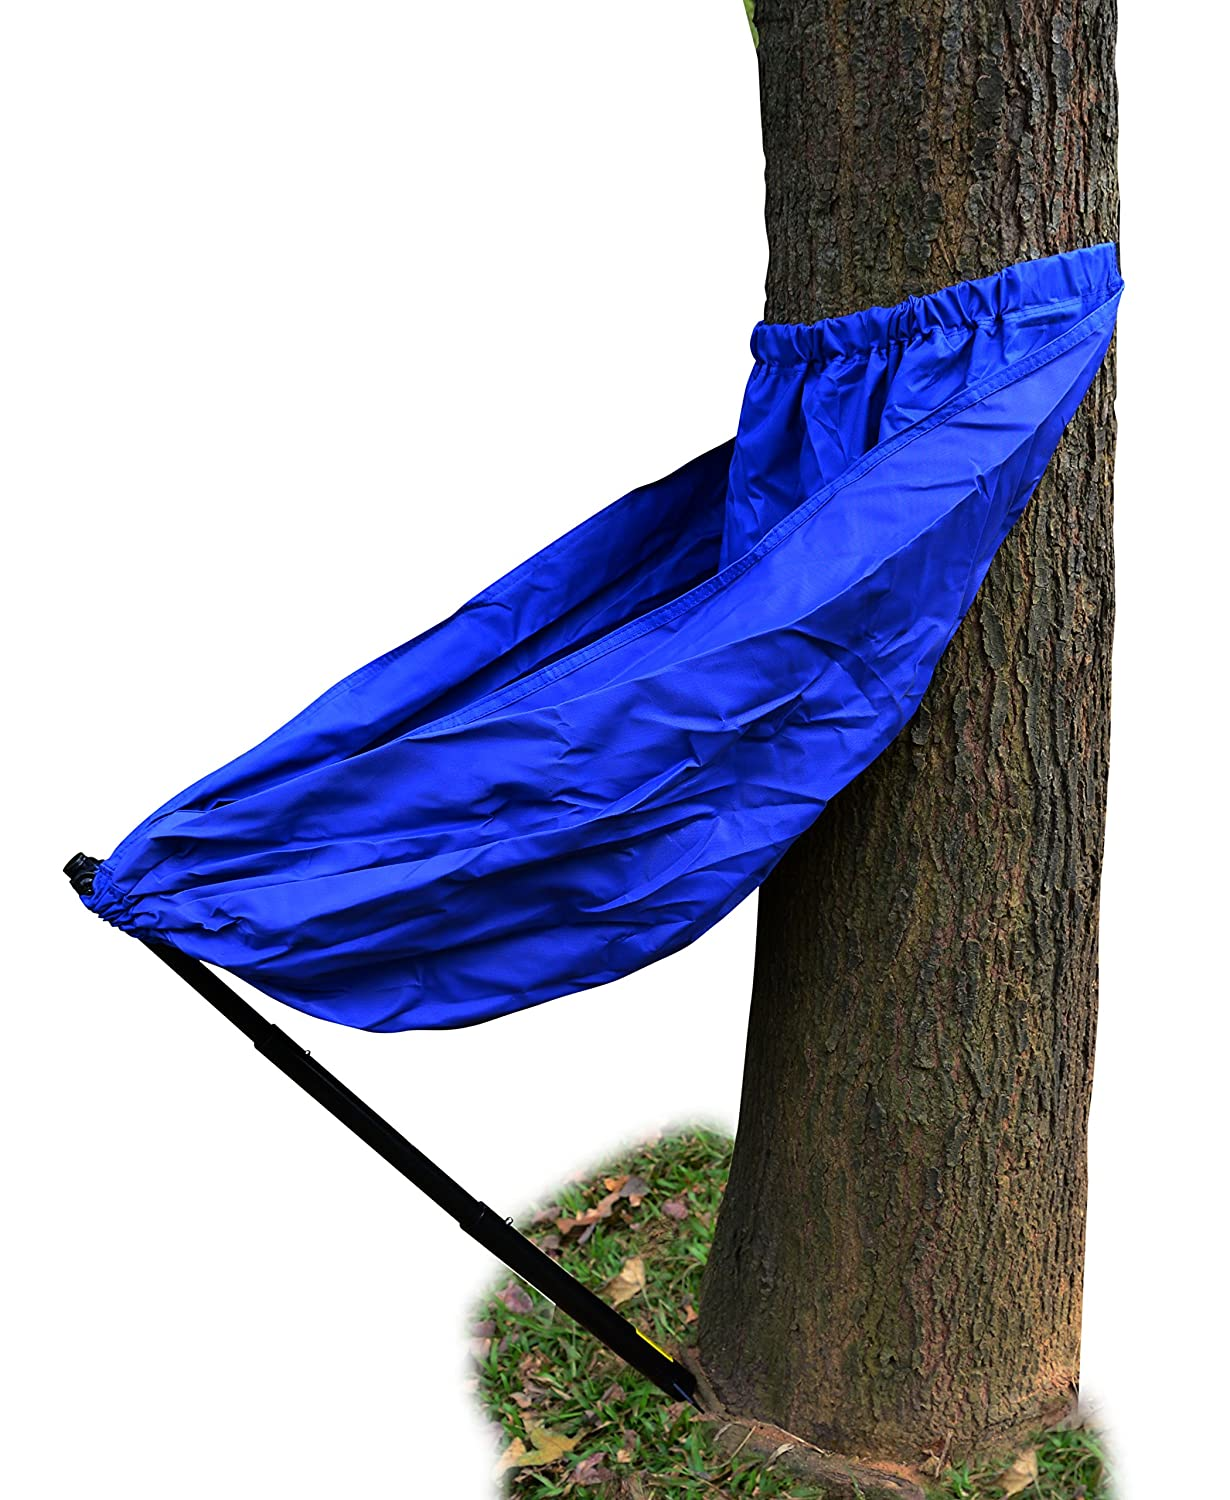 Amazon.com : Camping Chair  #1 Selling Camping Hunting Chair On Amazon   Hammock  Style Chair   Hangs On Any Tree   Lightweight And Portable  BLUE : Sports U0026  ...